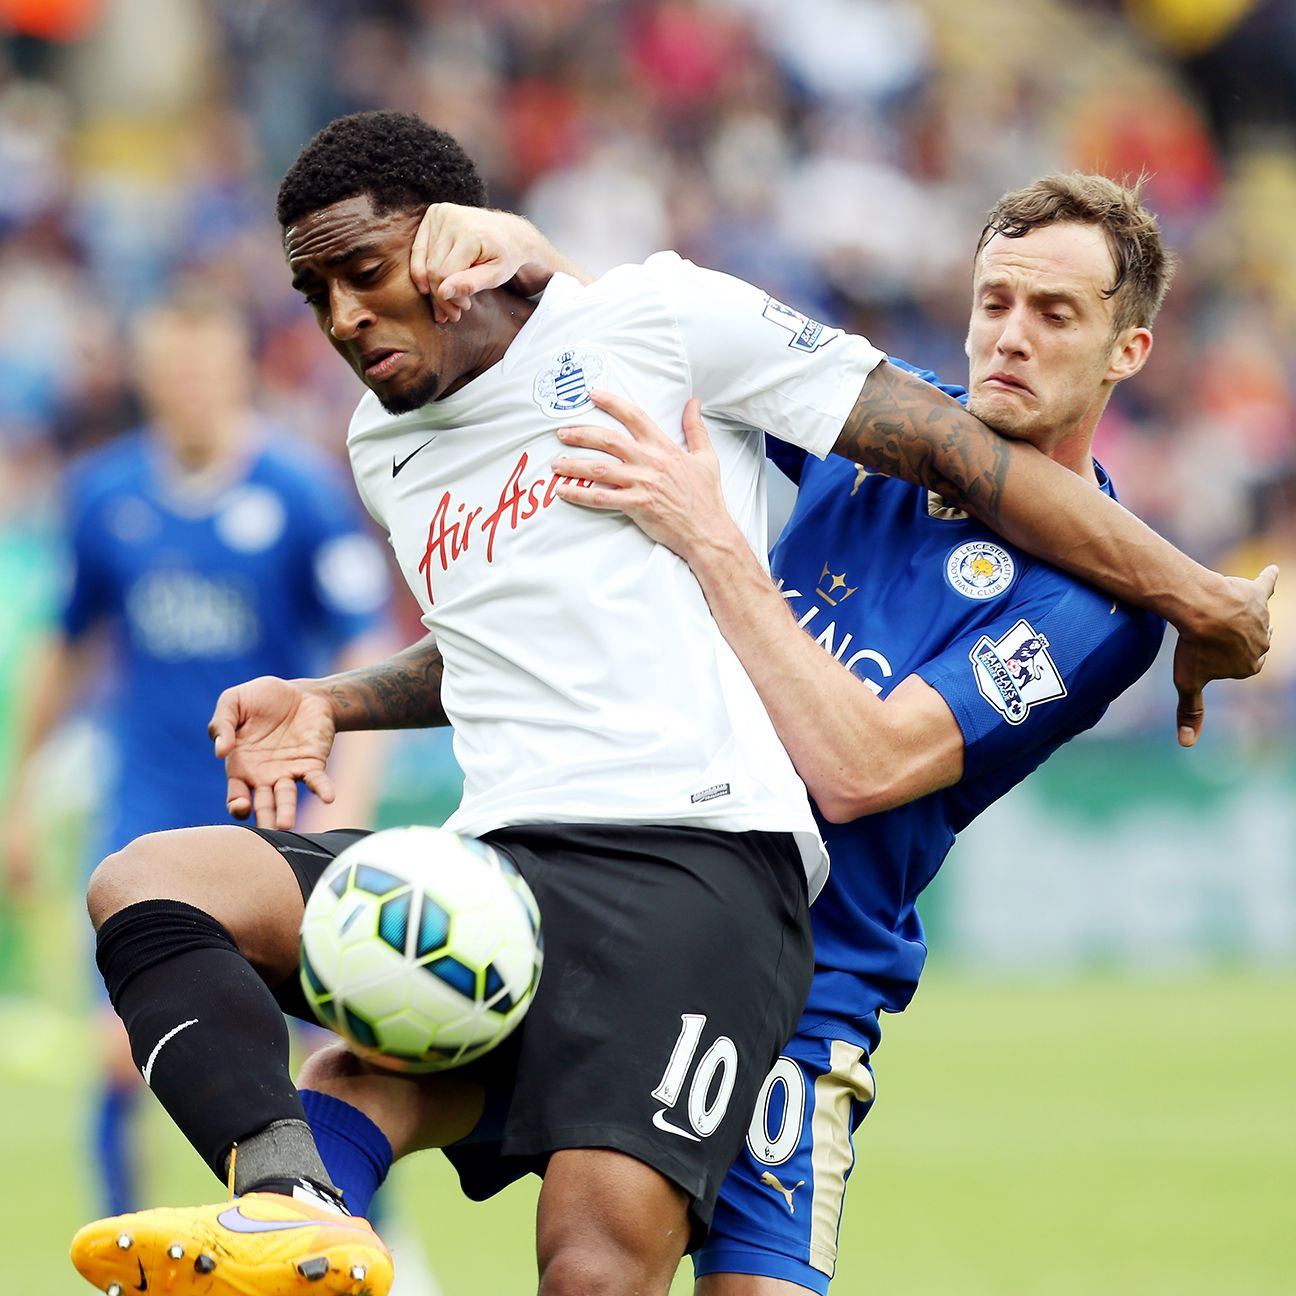 It remains to be seen if Leroy Fer will be with QPR next season in the Championship.